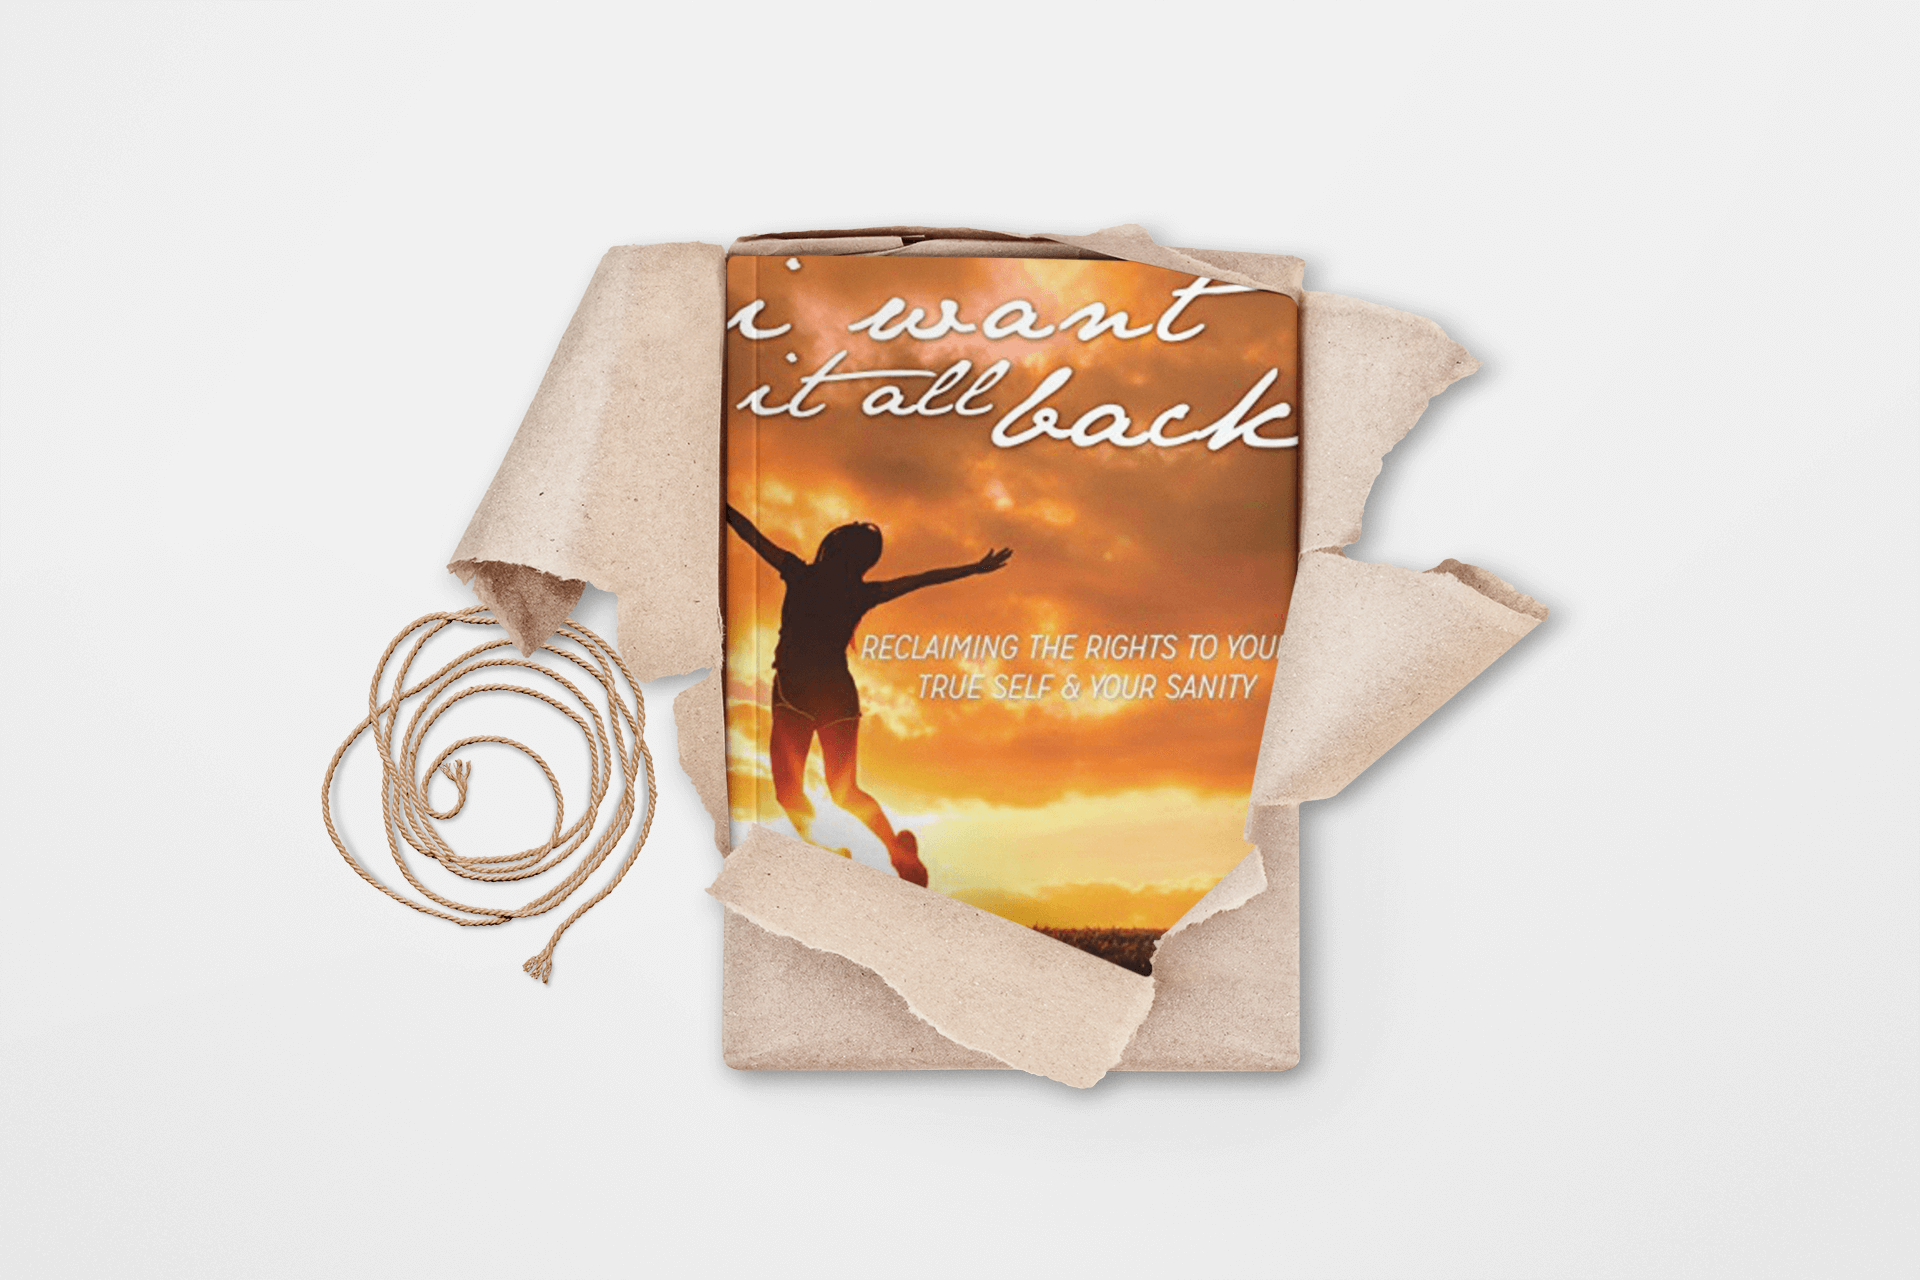 minimal-book-mockup-featuring-a-brown-paper-wrapping-303-el (1)